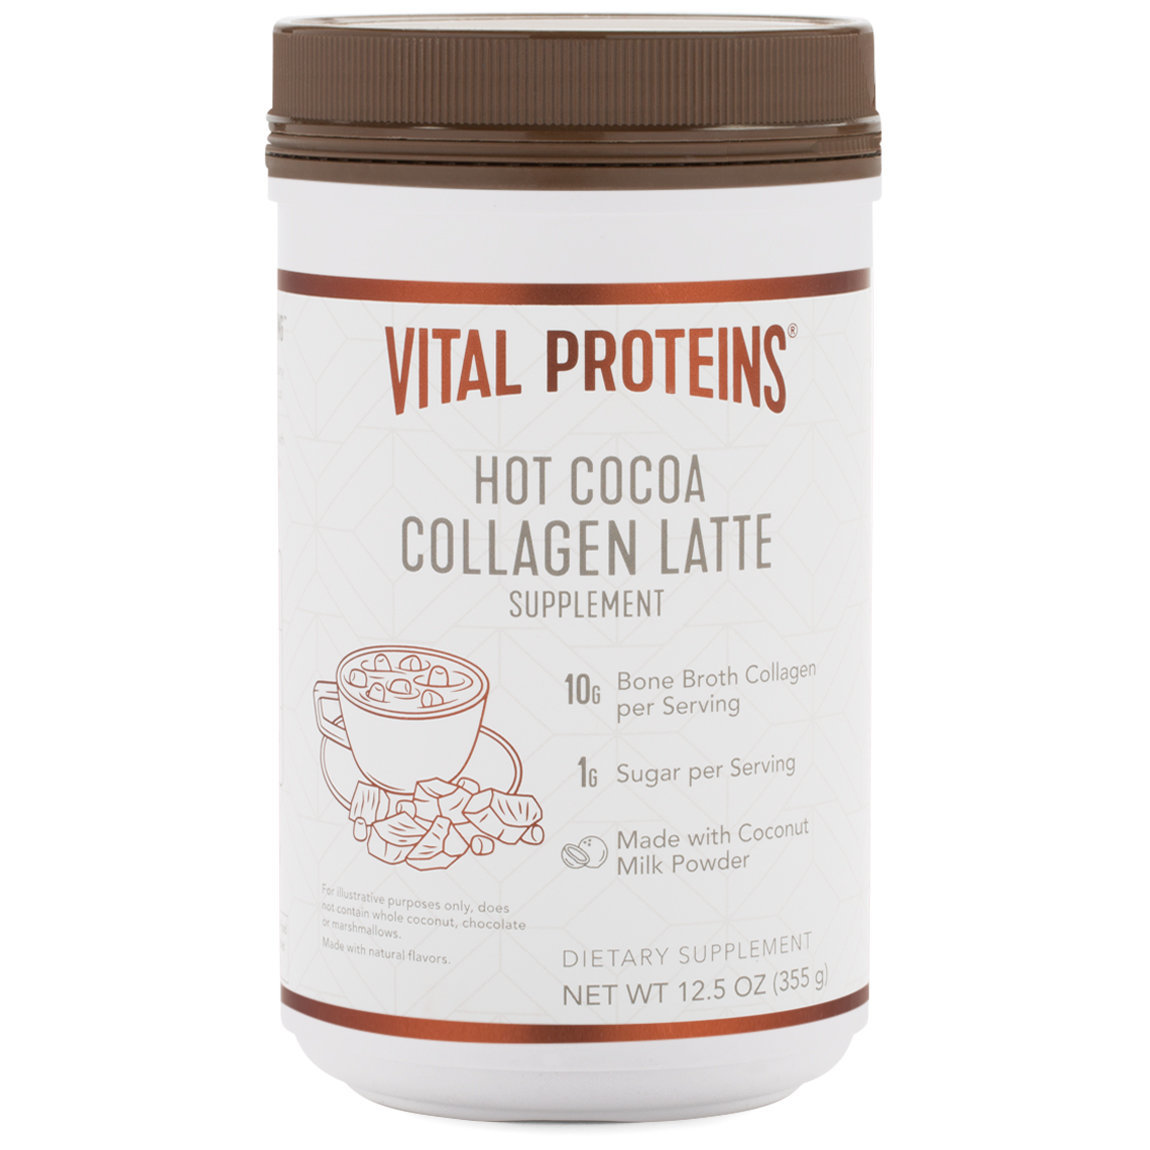 Vital Proteins Collagen Latte - Hot Cocoa alternative view 1 - product swatch.